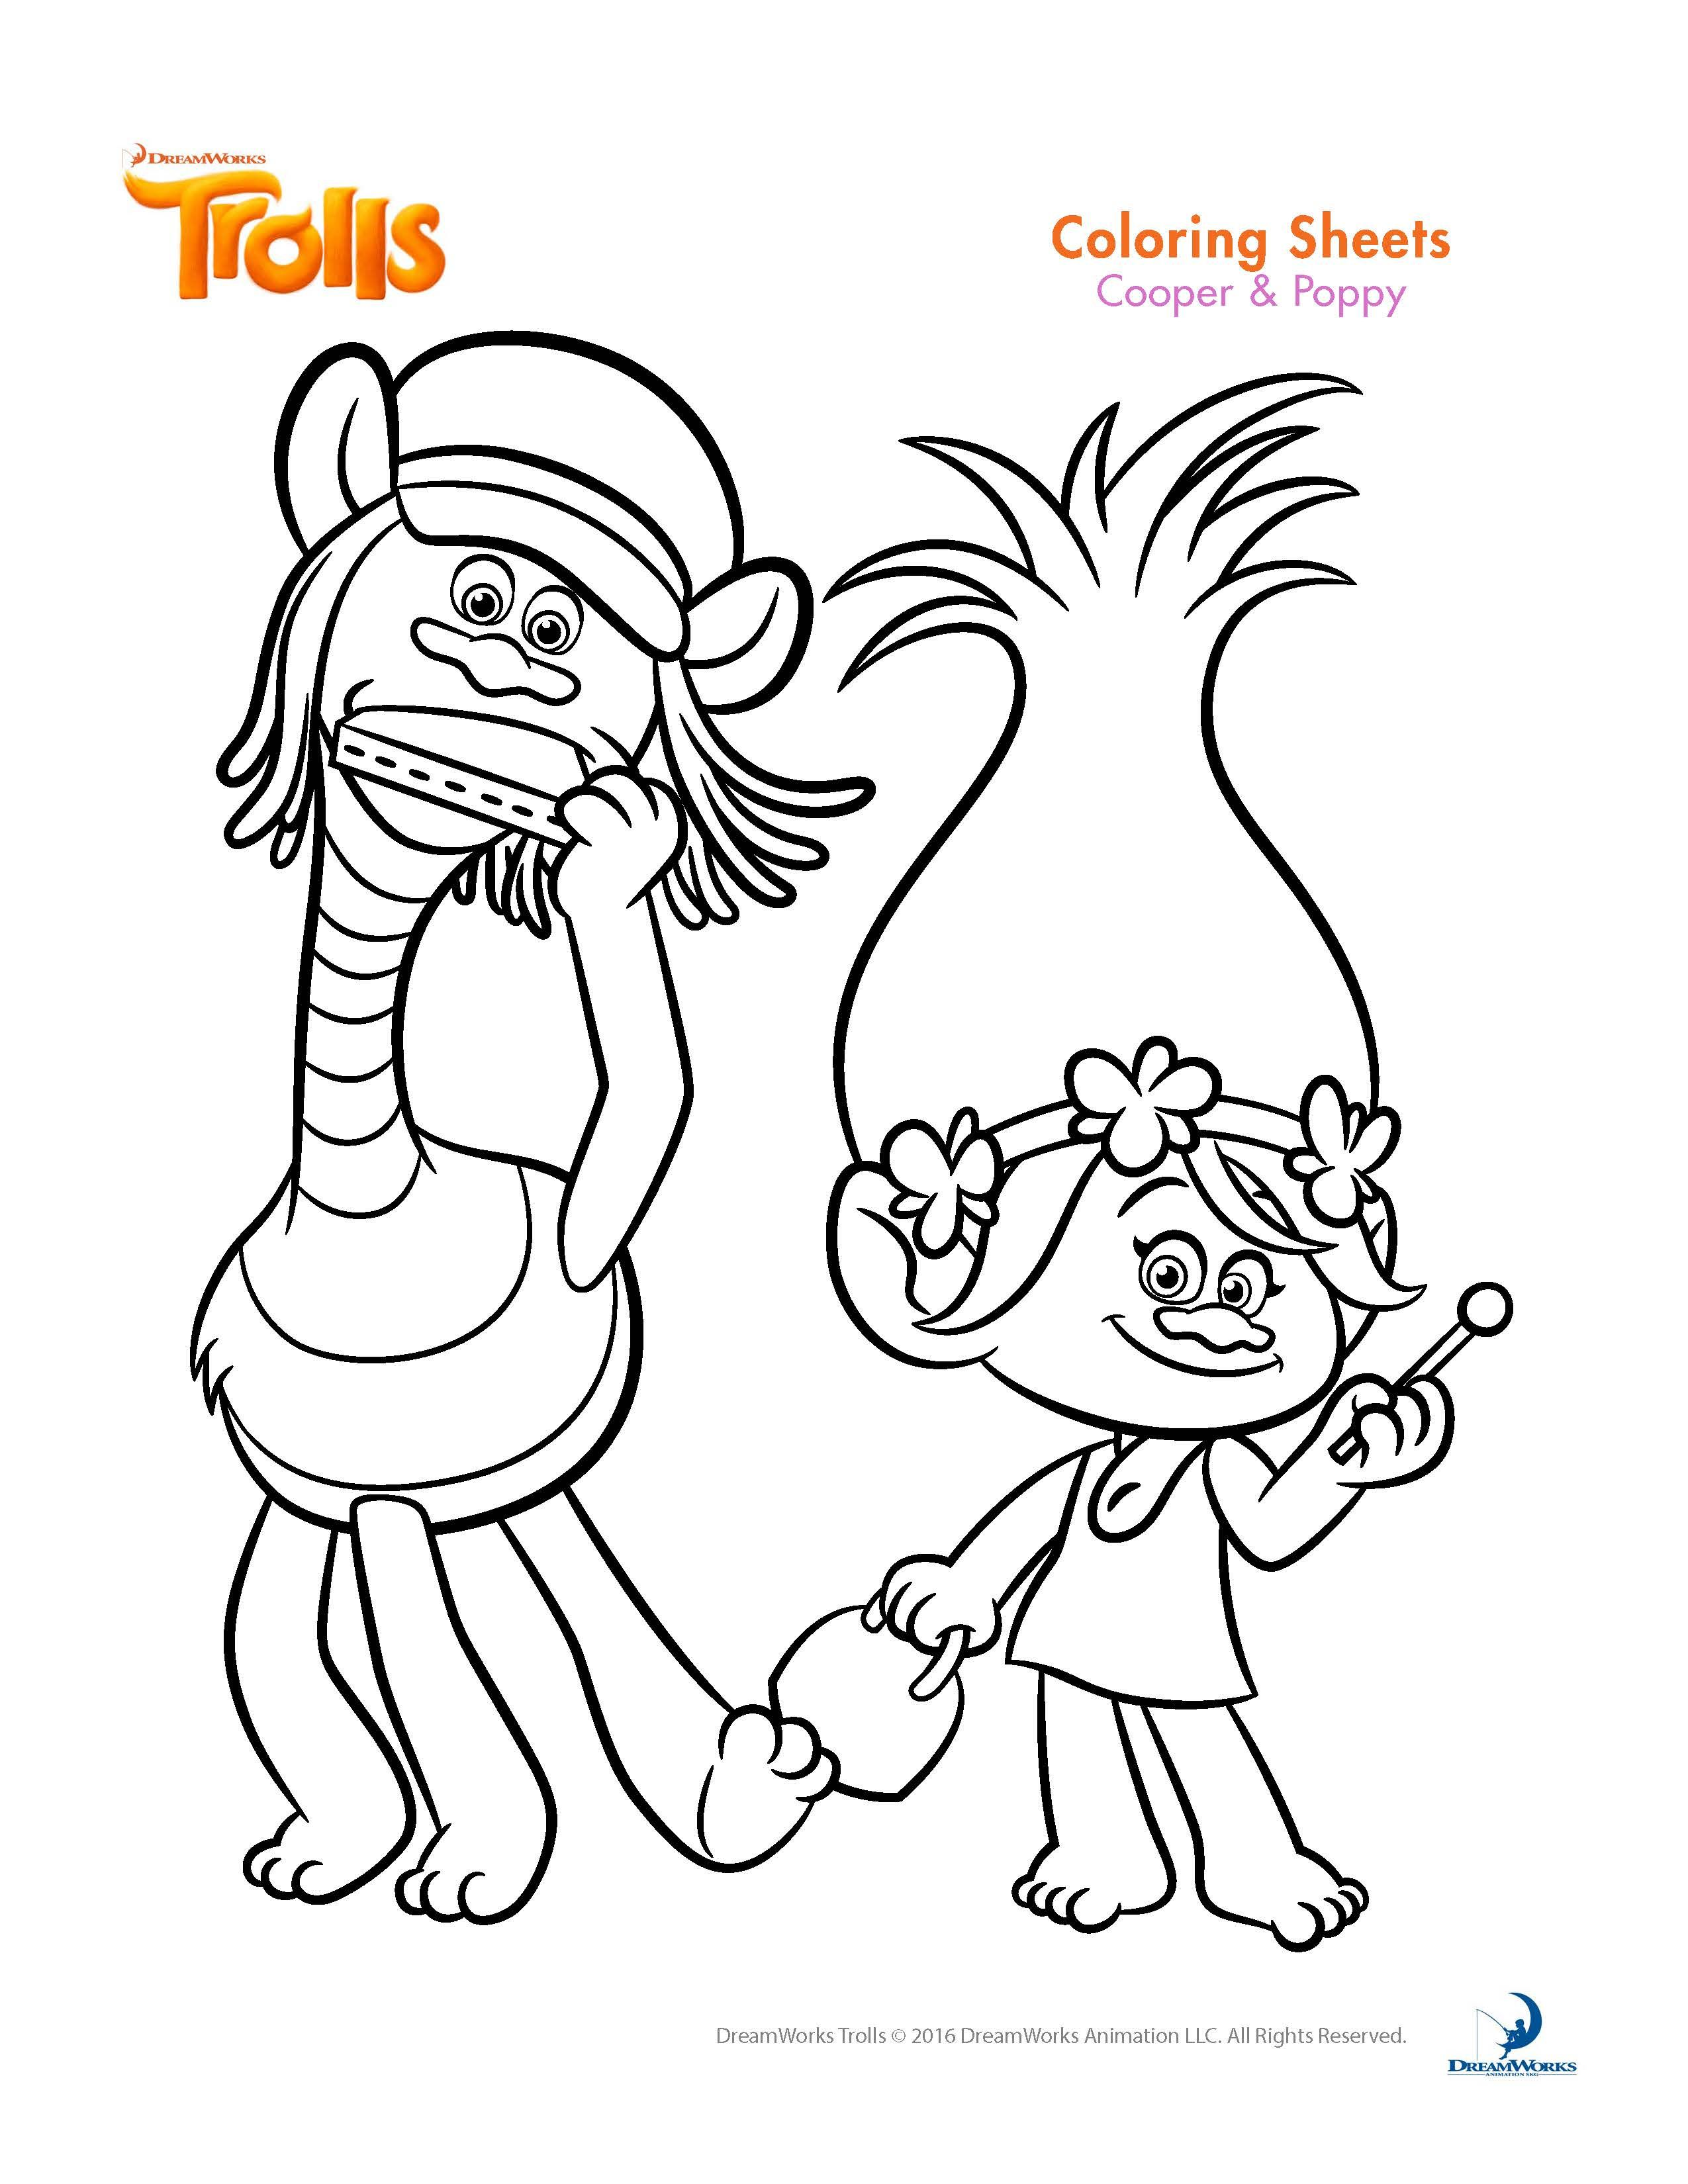 Christmas Coloring Pages Trolls With Sheets And Printable Activity B Day